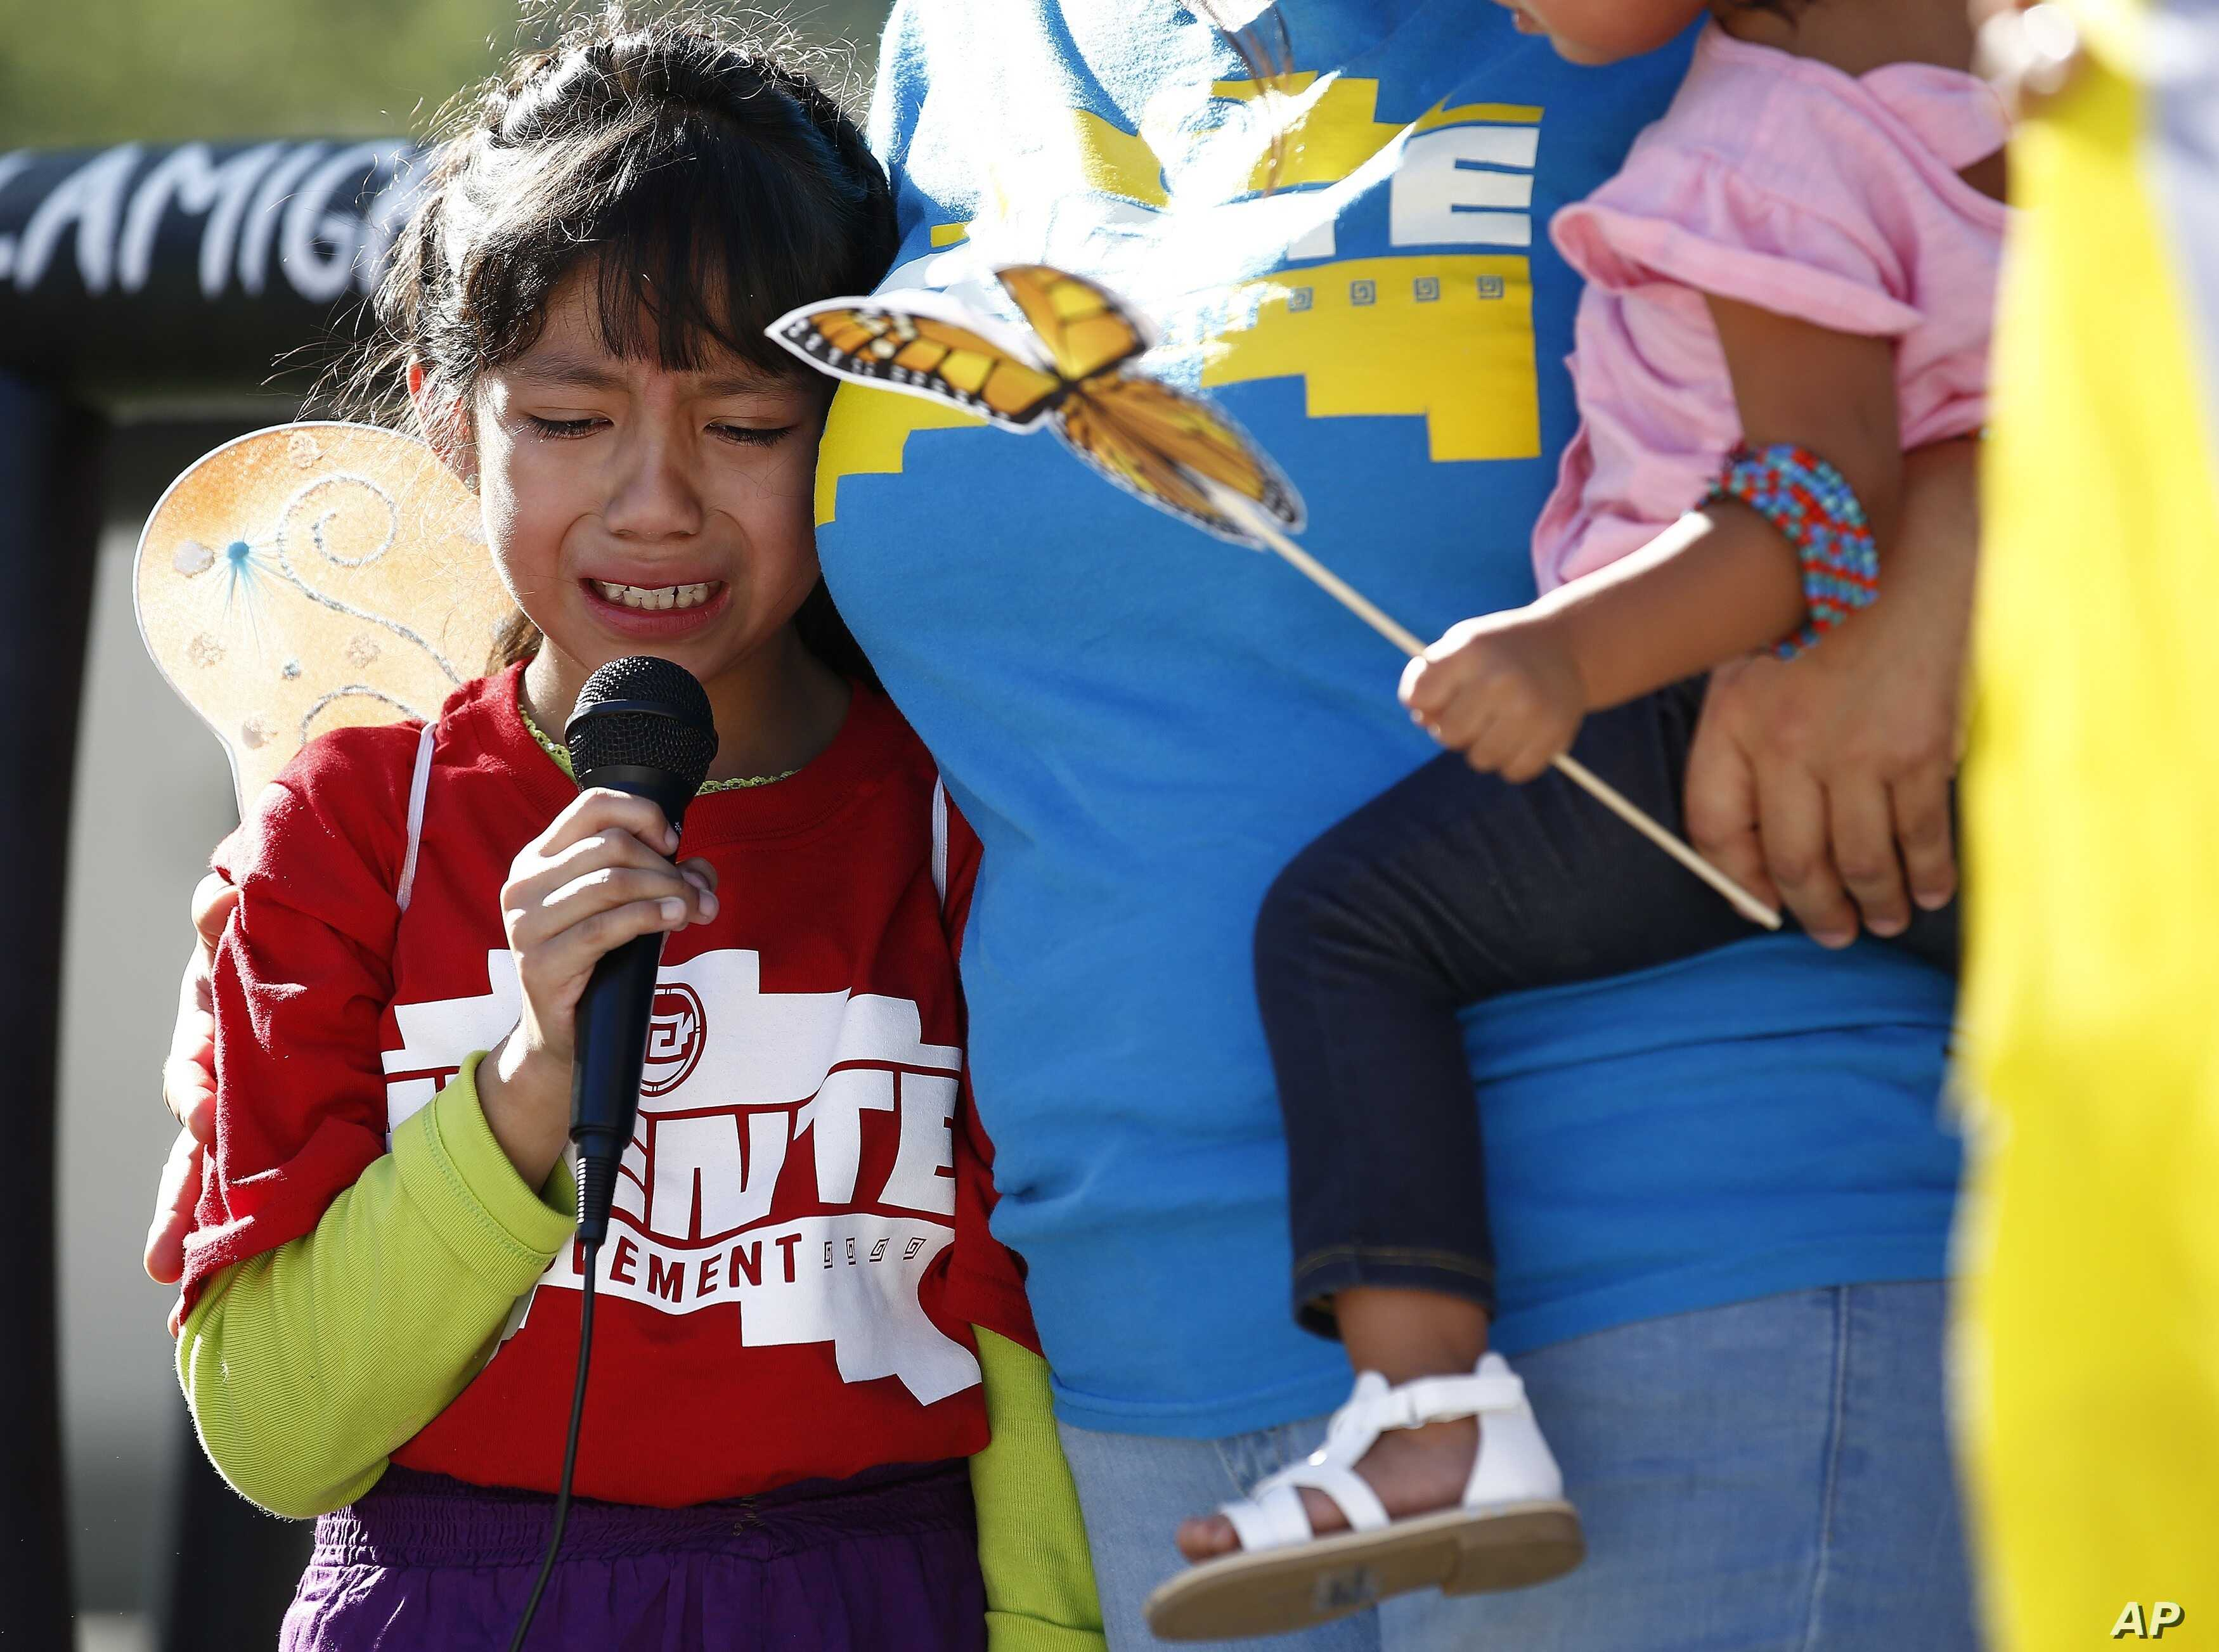 Akemi Vargas, 8, cries as she talks about being separated from her father during a family separation protest in Phoenix, Arizona, June 18, 2018.